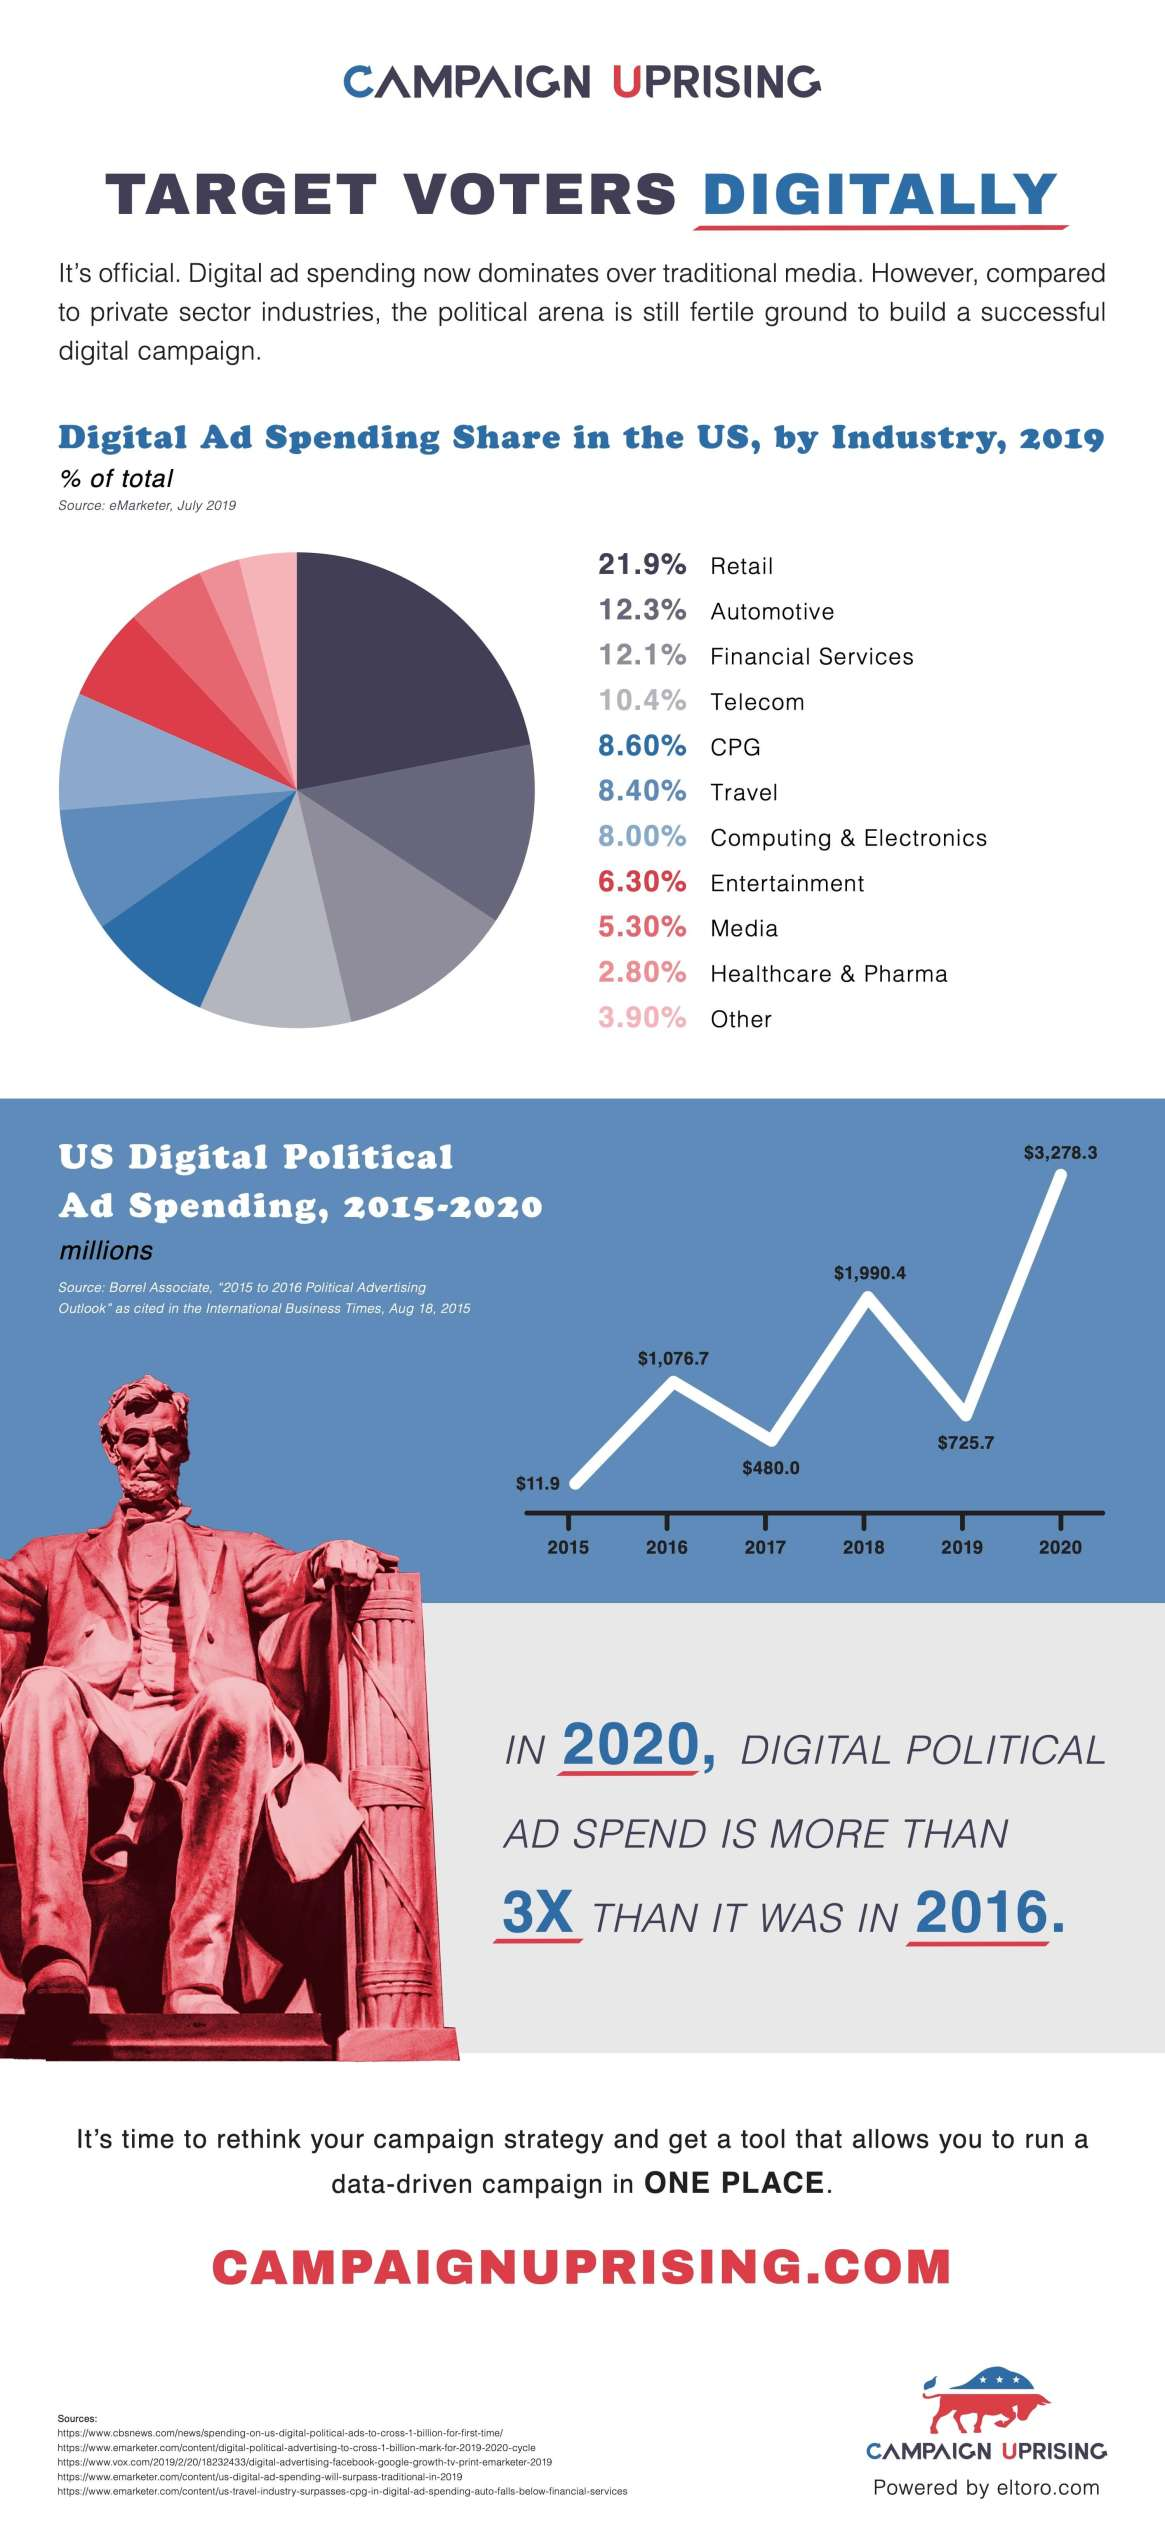 Analyzing Digital Advertising Spends in 2019 by Industry